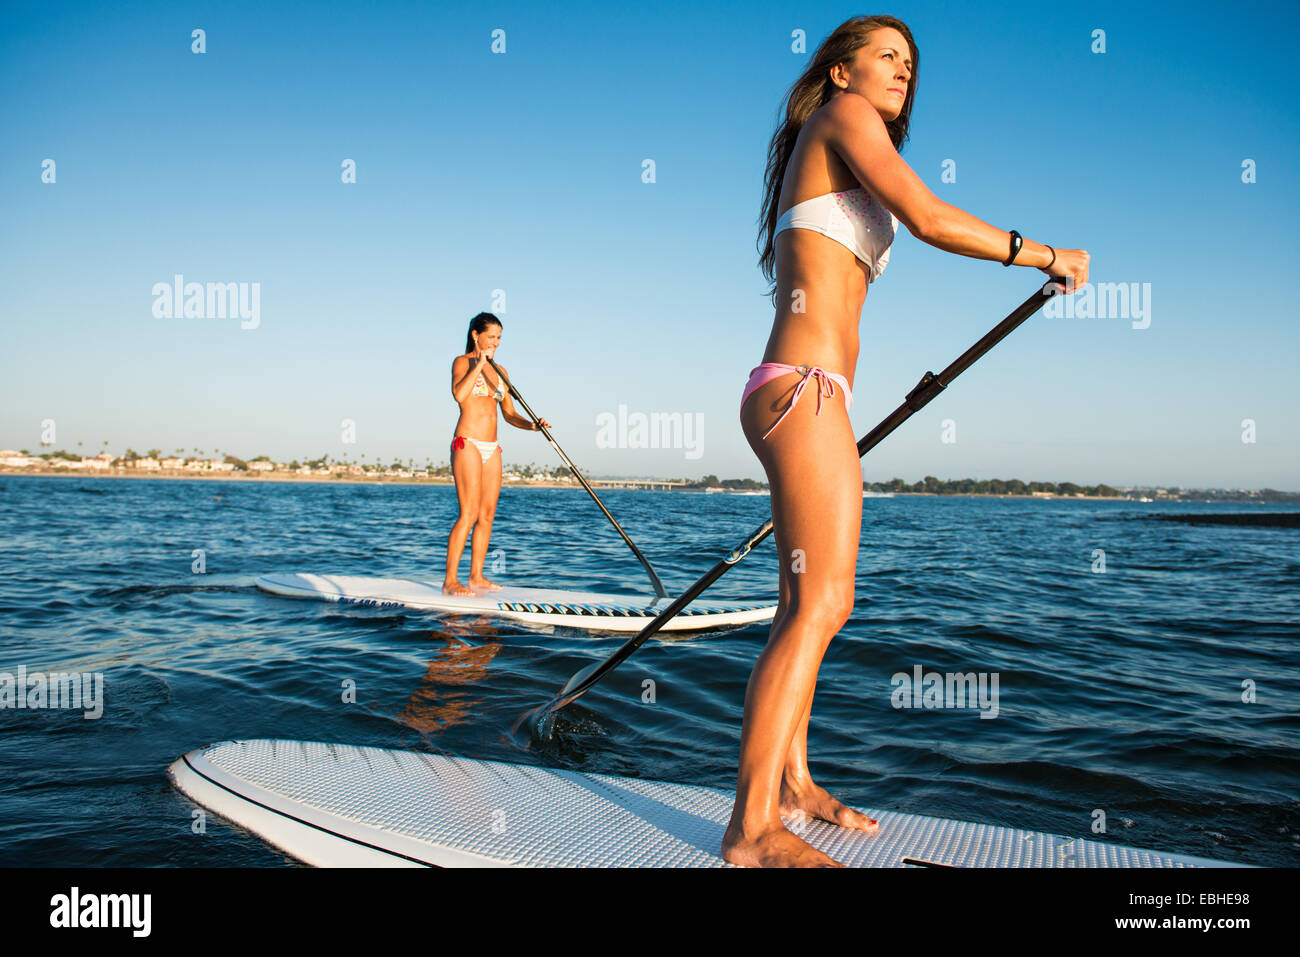 Dos mujeres levántate paddleboarding, Mission Bay, San Diego, California, EE.UU. Imagen De Stock